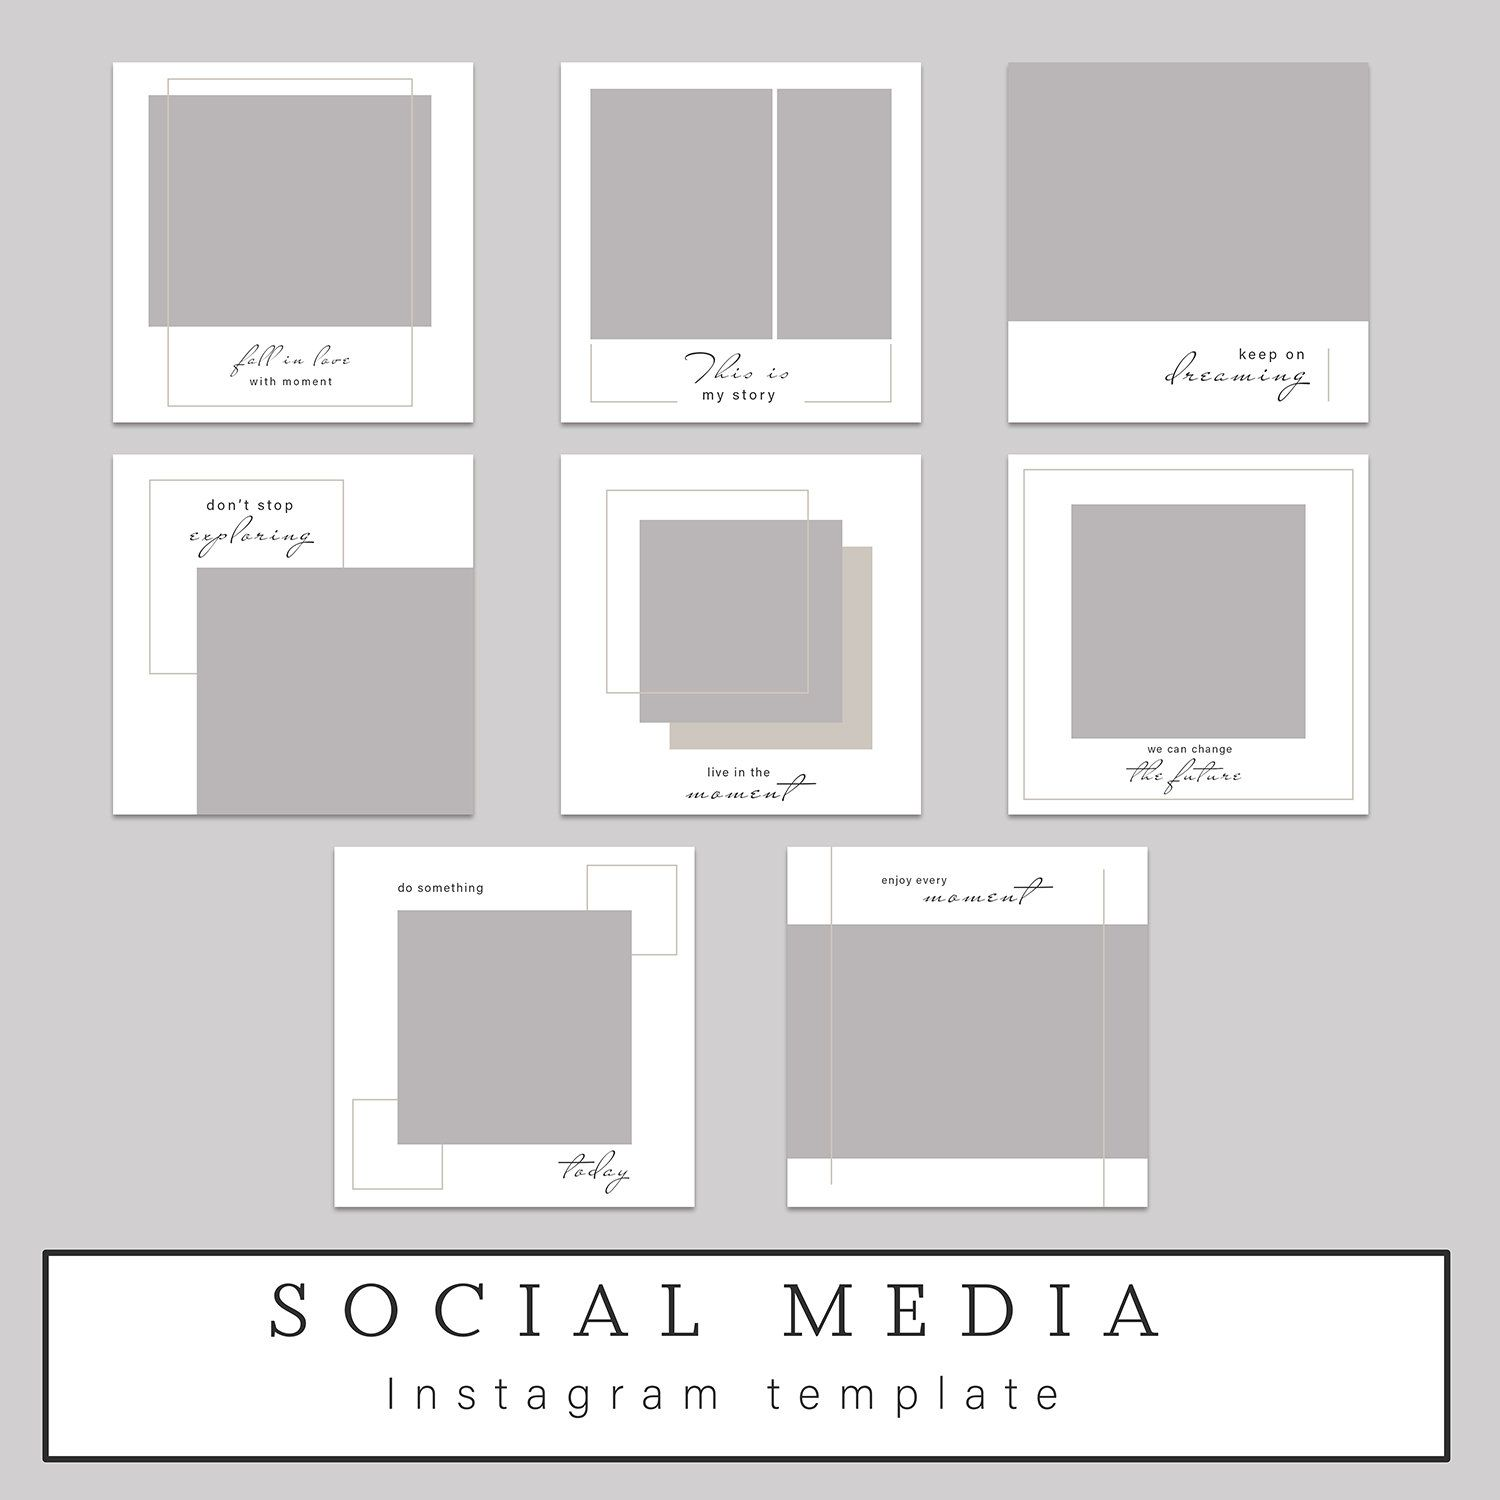 Square Template Photoshop Template Instagram Template Facebook Templates Instagram Post Editable Template Square Post Instagram Template Instagram Square Instagram Template Design